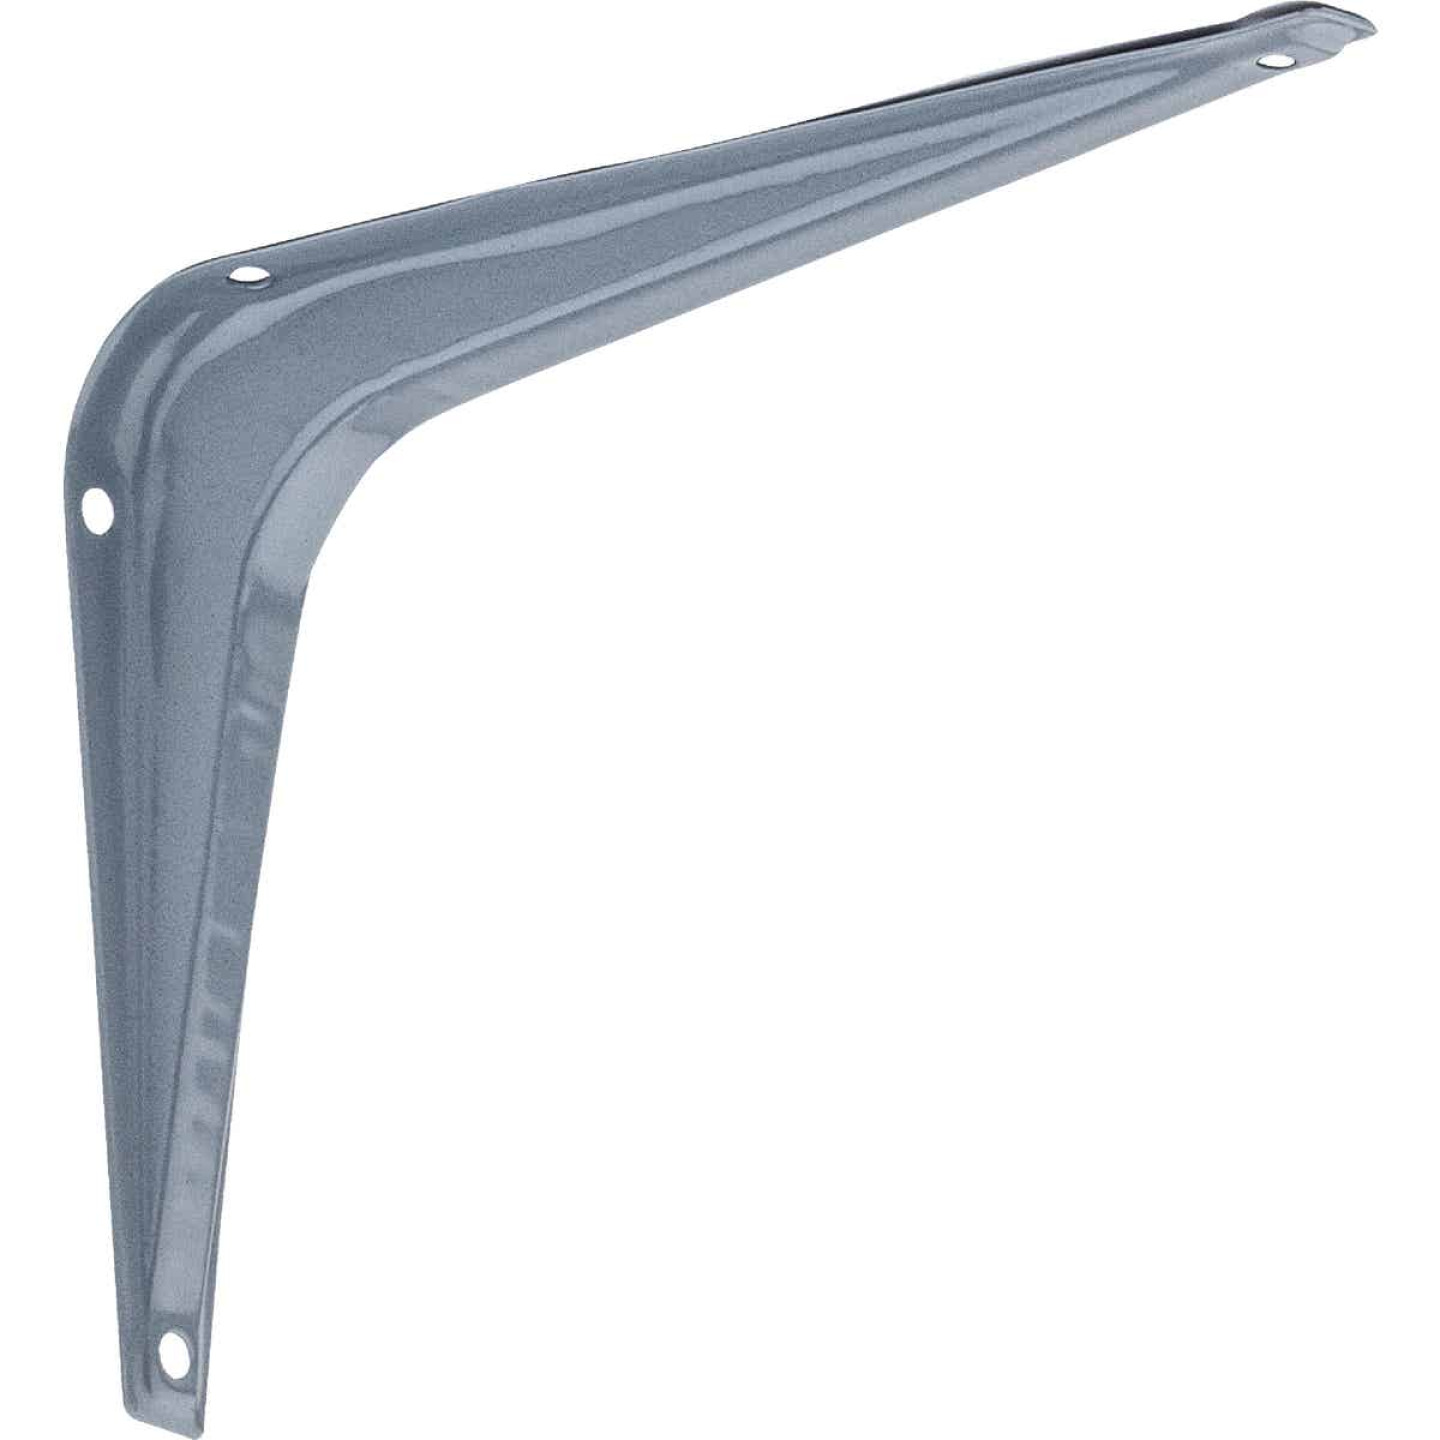 National 211 5 In. D. x 6 In. H. Gray Steel Shelf Bracket Image 1